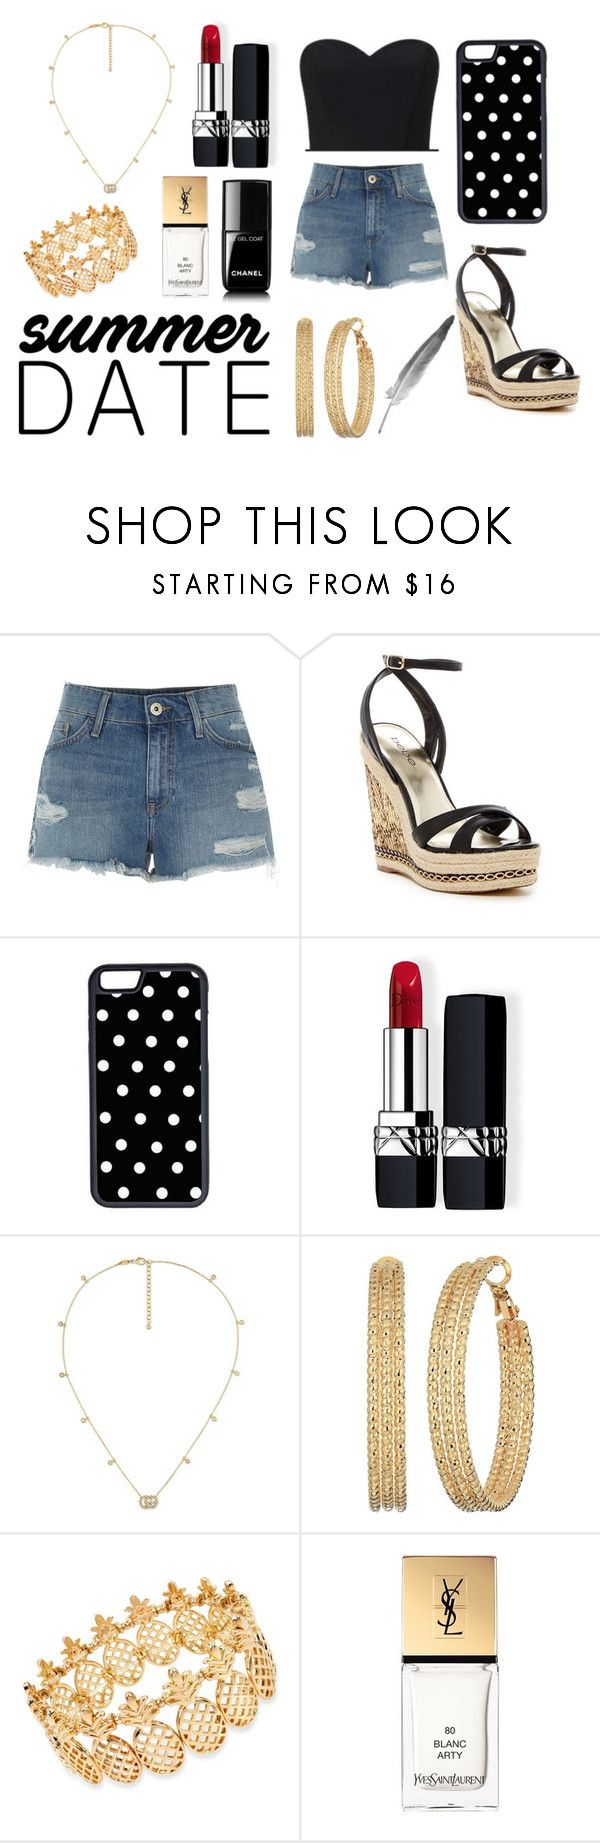 """""""Sin título #402"""" by candy-nohemi-velazco-mendiola ❤ liked on Polyvore featuring River Island, Bebe, CellPowerCases, Christian Dior, Gucci, GUESS, INC International Concepts, Yves Saint Laurent and Chanel"""